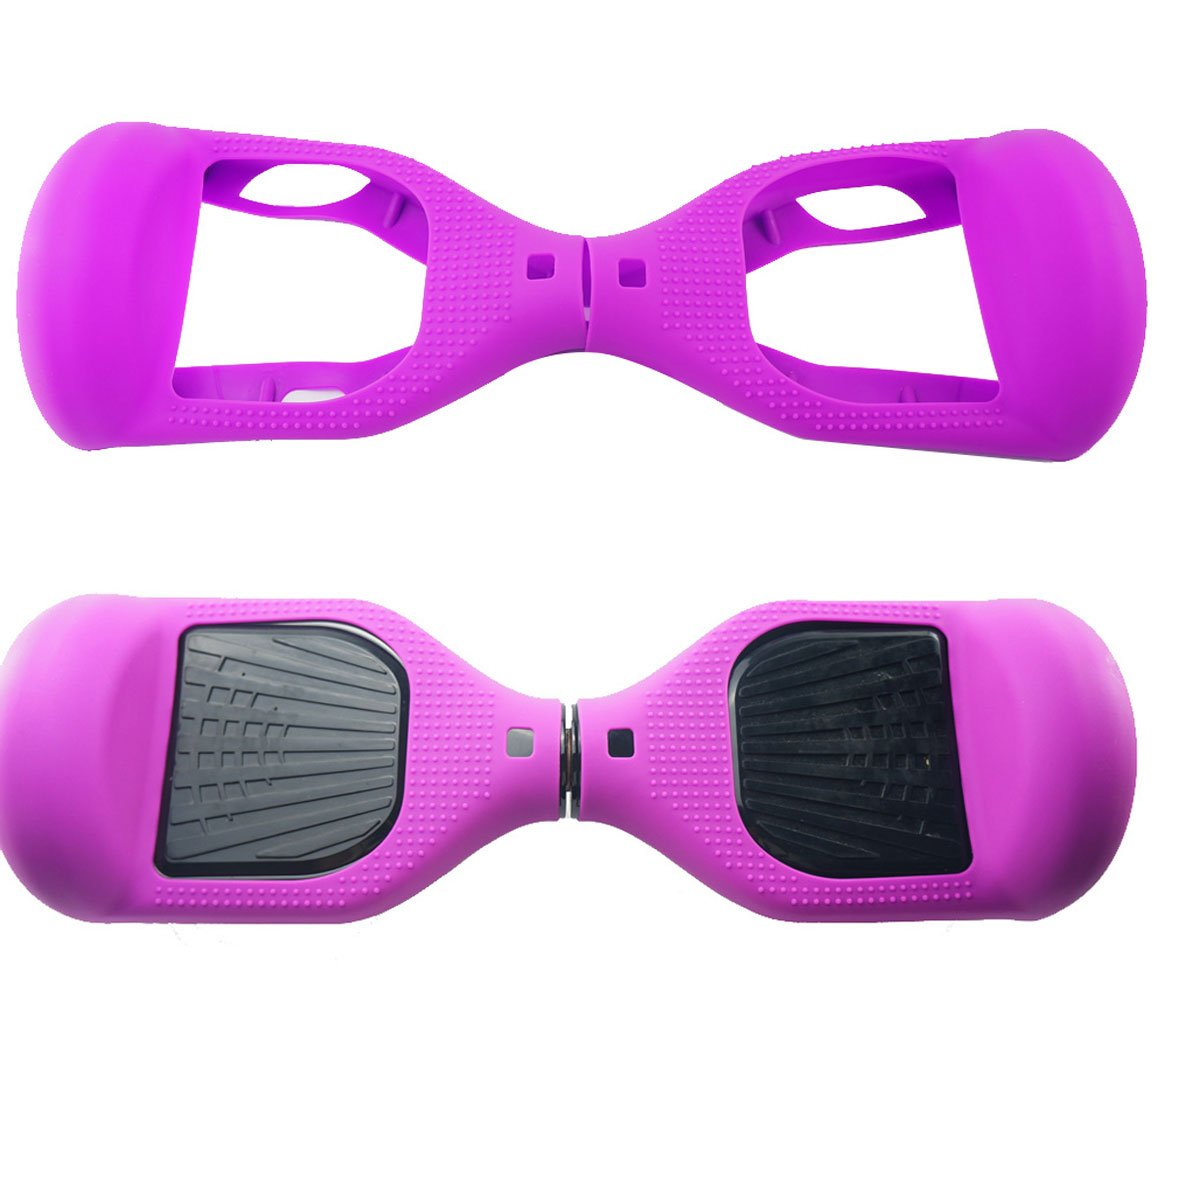 FBSPORT 6.5inch Silicone Scratch Protector Cover Case For 2 Wheels Self Balancing Electric Scooter (style-1)